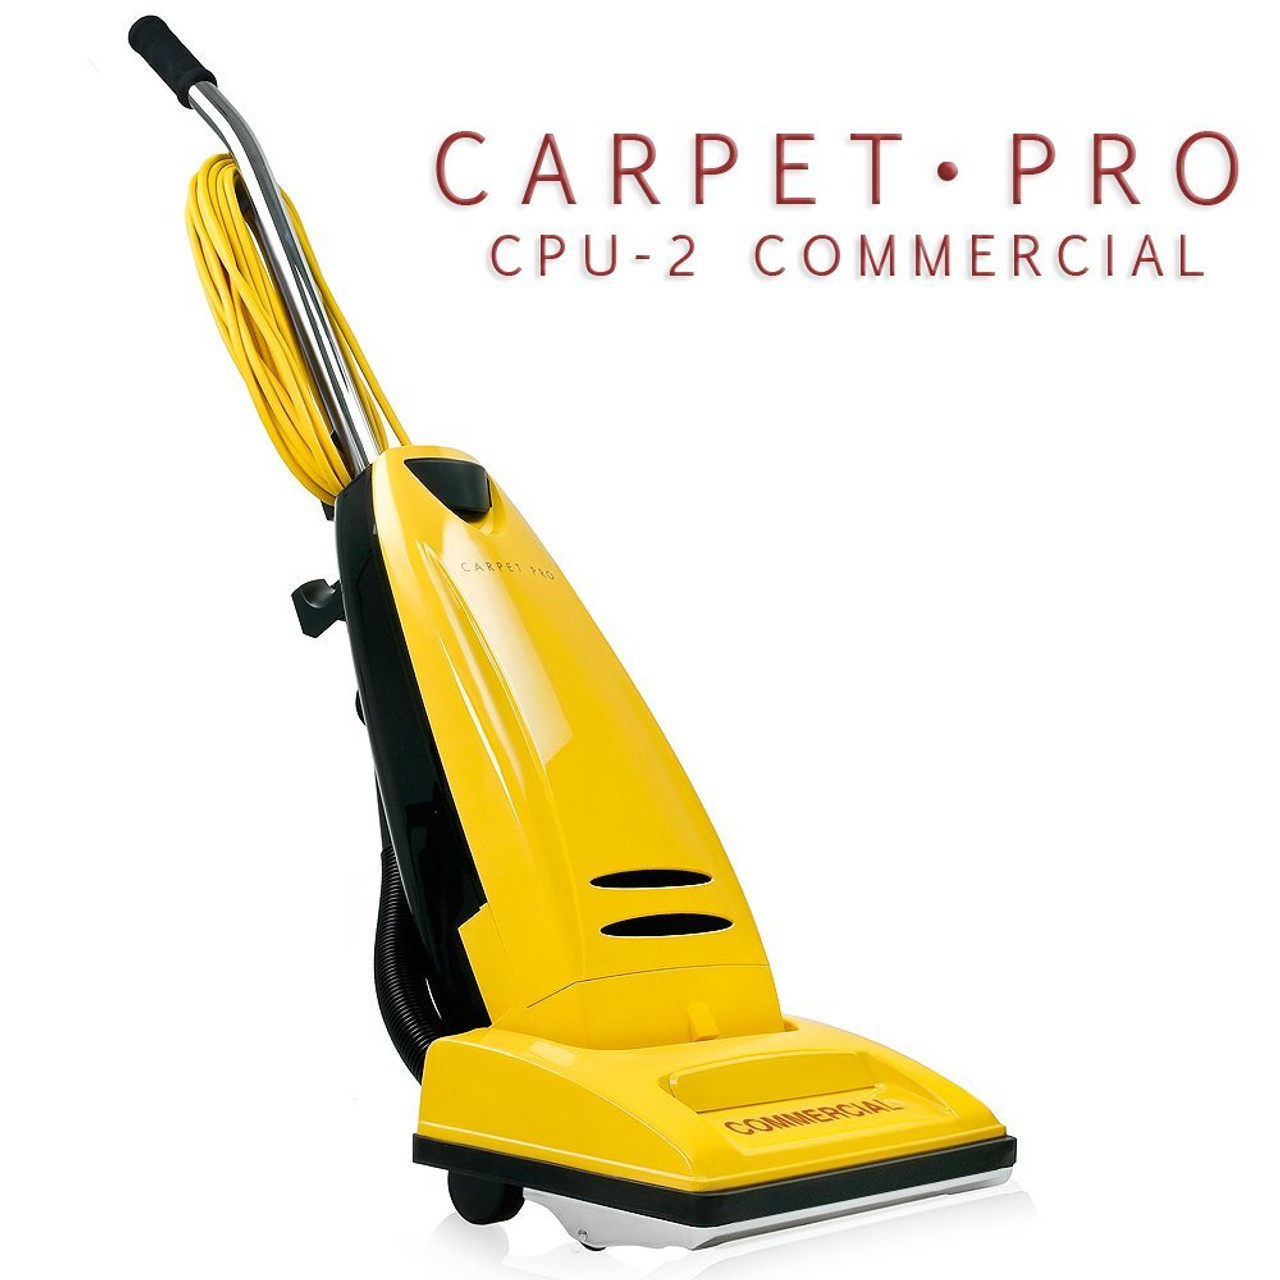 Carpet Pro Commercial Vacuum Cleaners